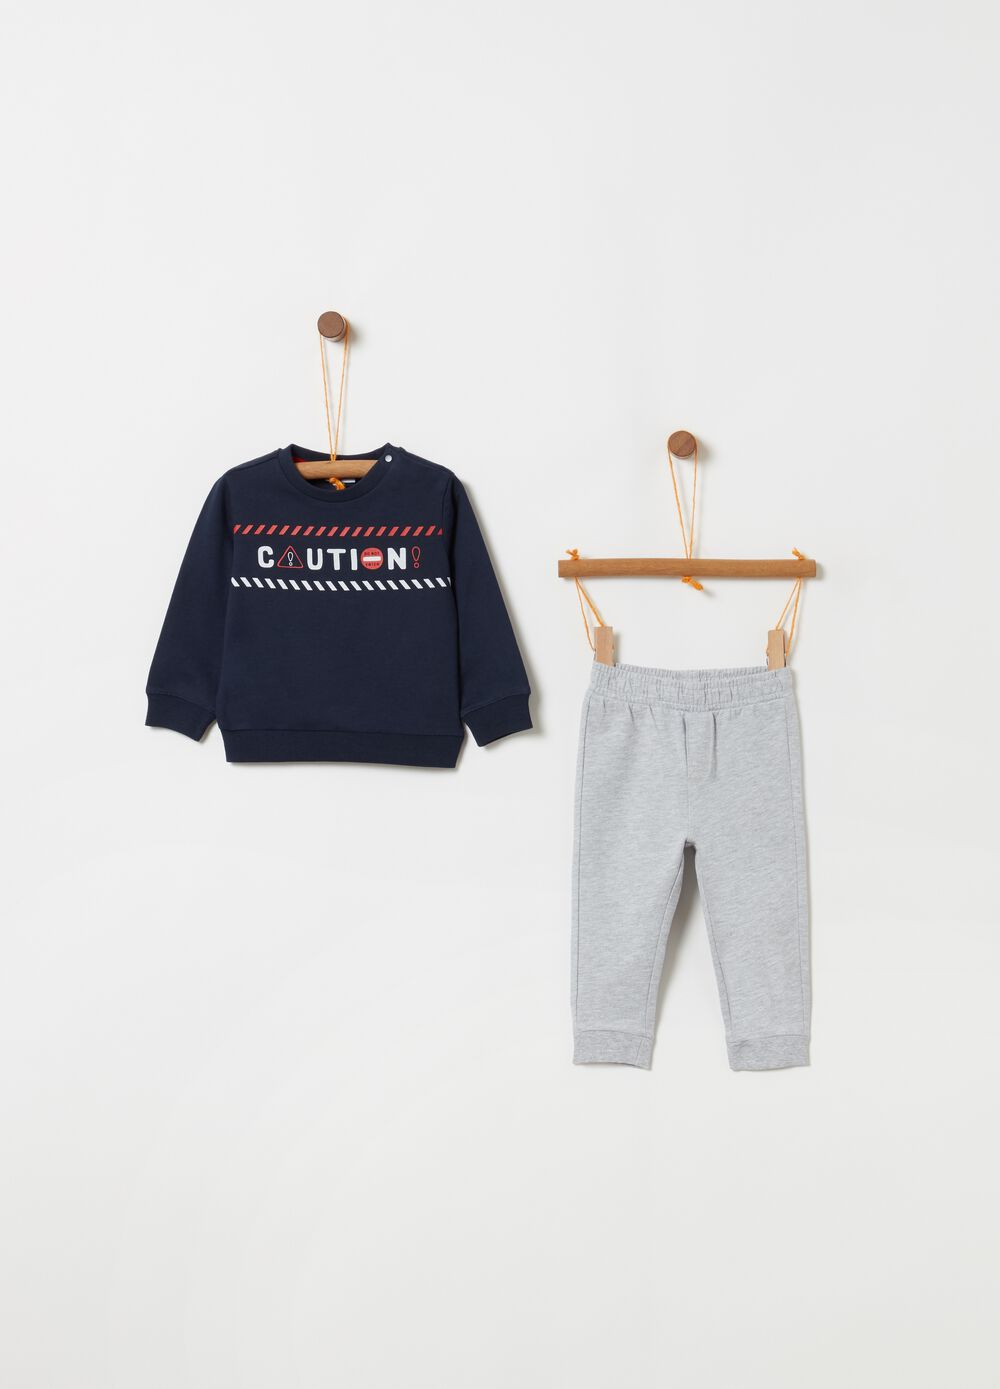 Top and trousers jogging set with lettering print